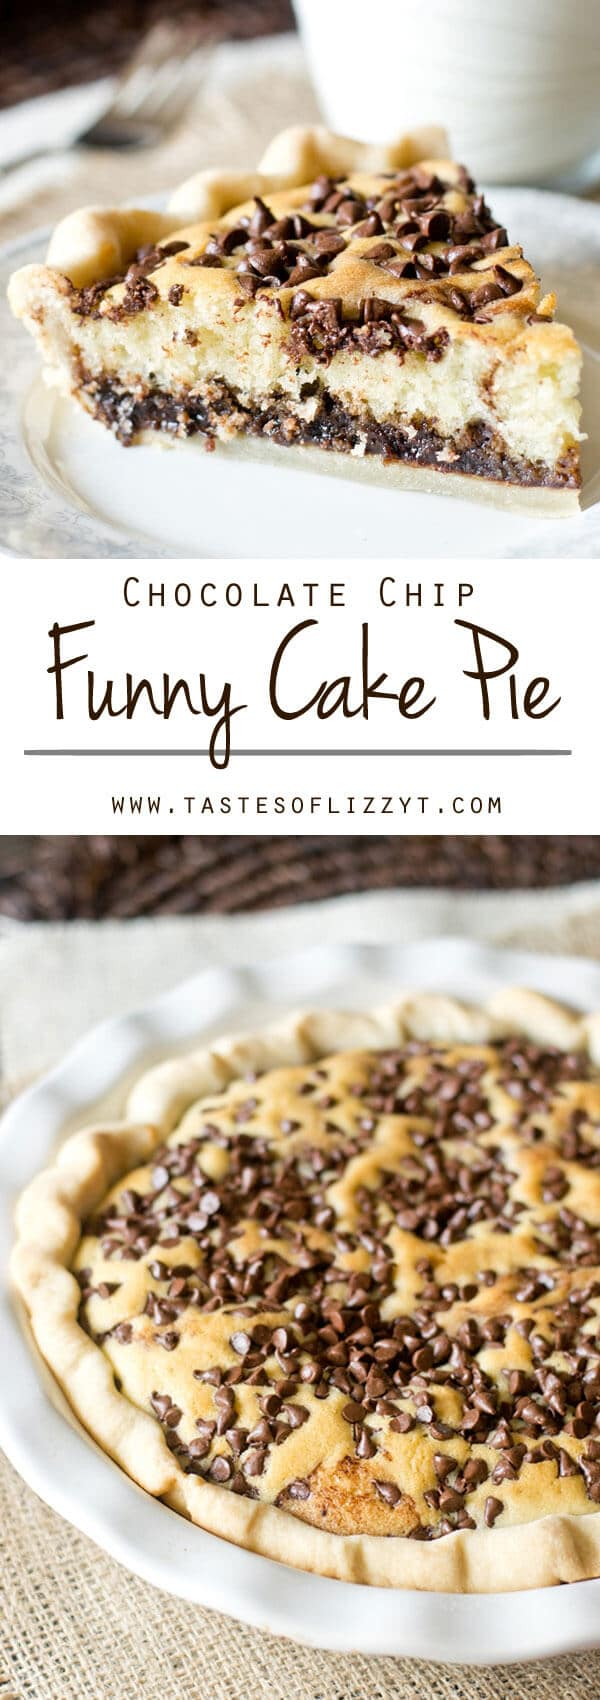 Chocolate Chip Funny Cake Pie is an old recipe with timeless appeal. Chocolate fudge is topped with a soft, buttery cake and bakes inside a pie shell. Chocolate Chip Funny Cake Pie {Chocolate Cake Pie Dessert Recipe}